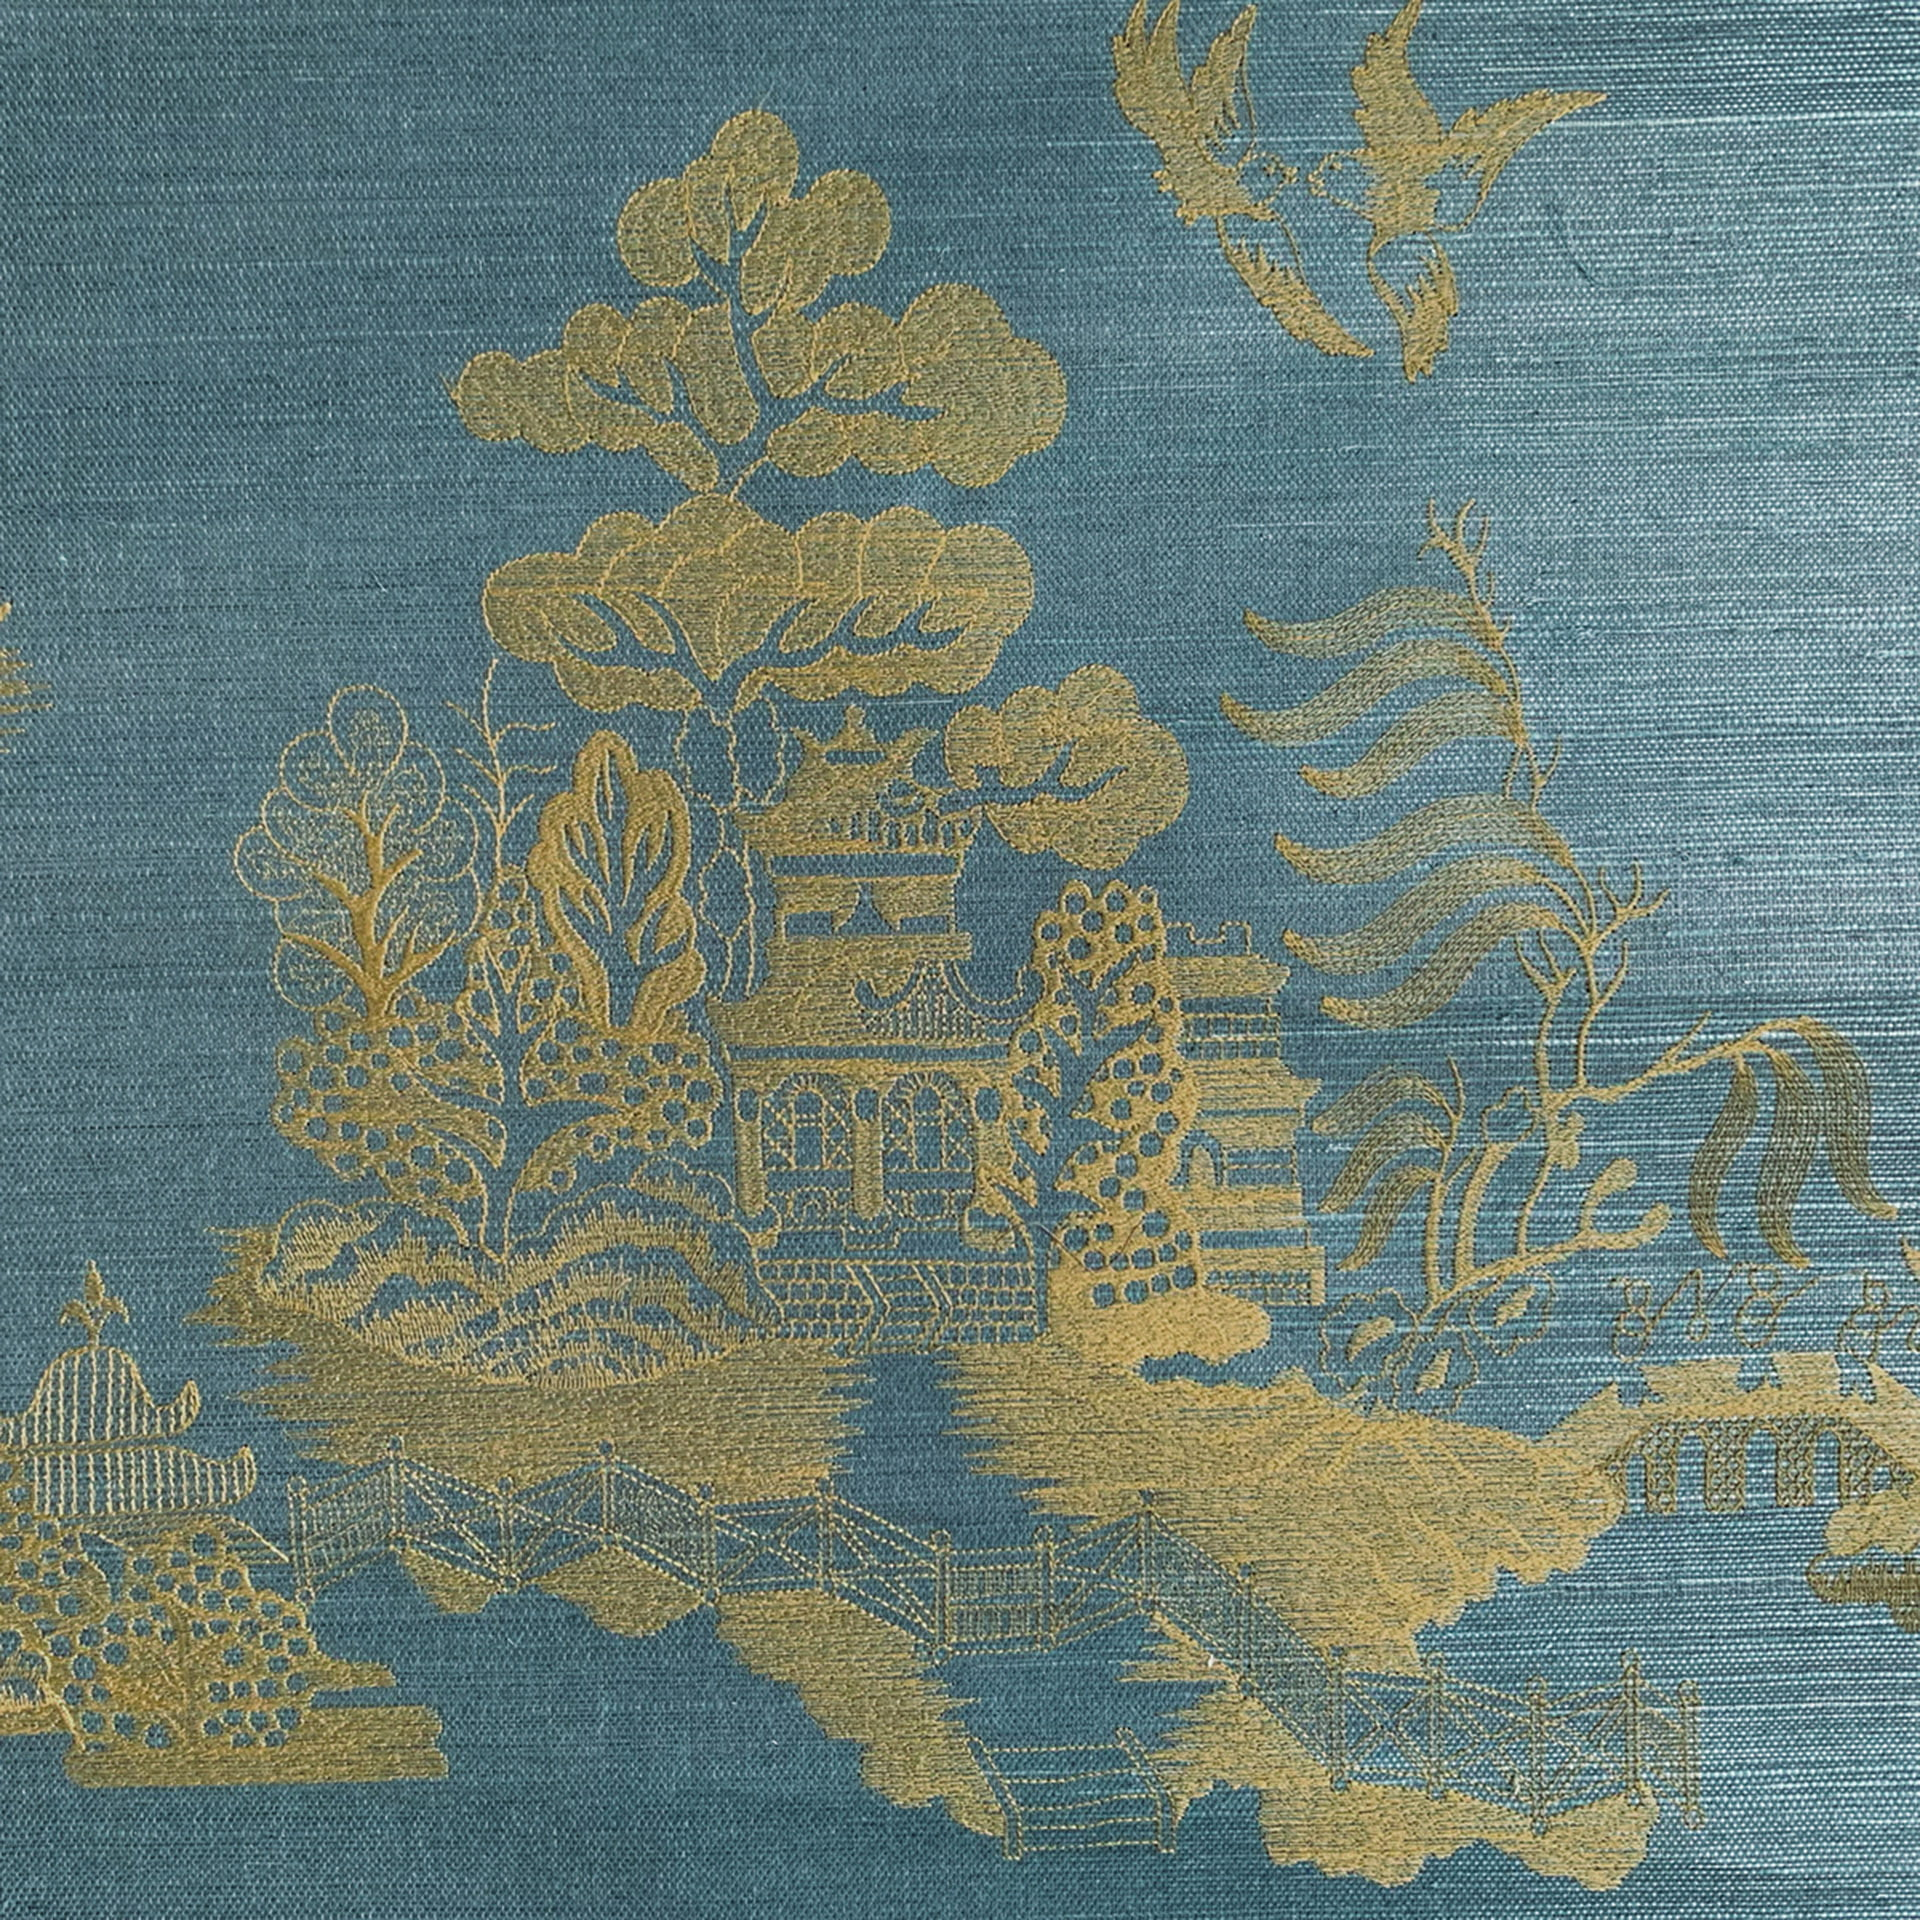 La Pagode embroidered grass cloth in Brunschwig & Fils Les Ensembliers collection.